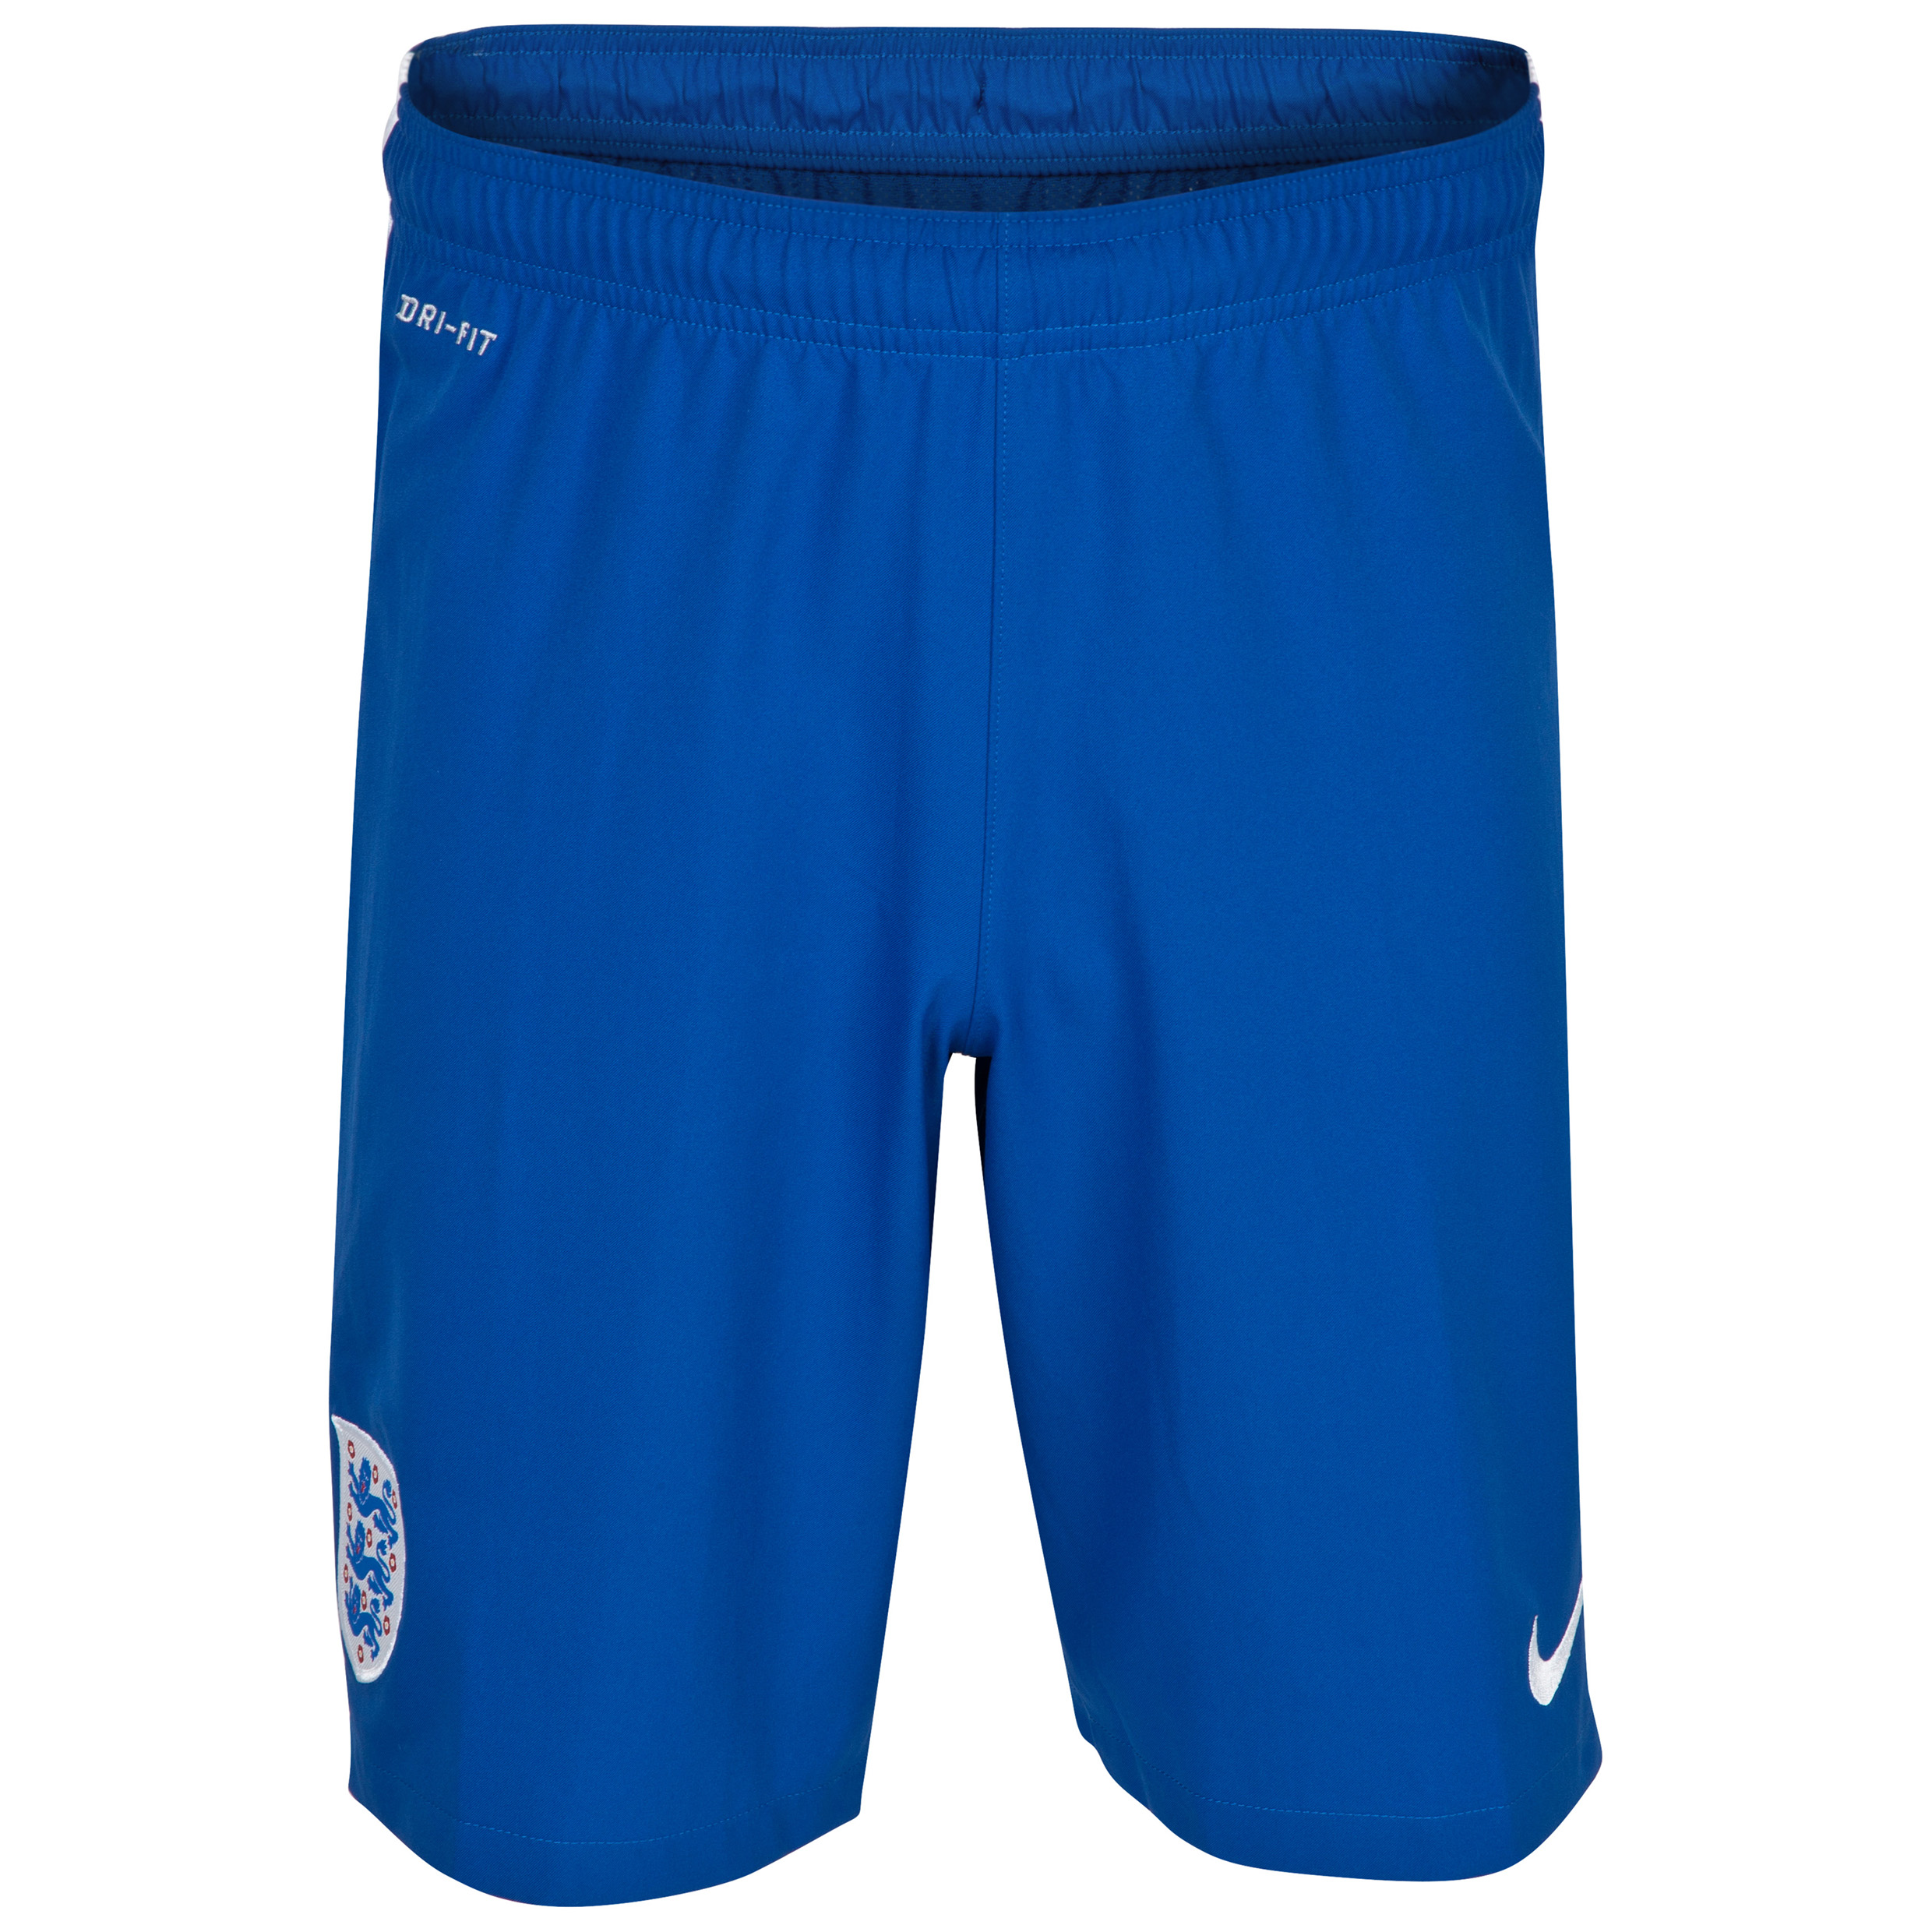 England Home Change Short 2014/15 Royal Blue